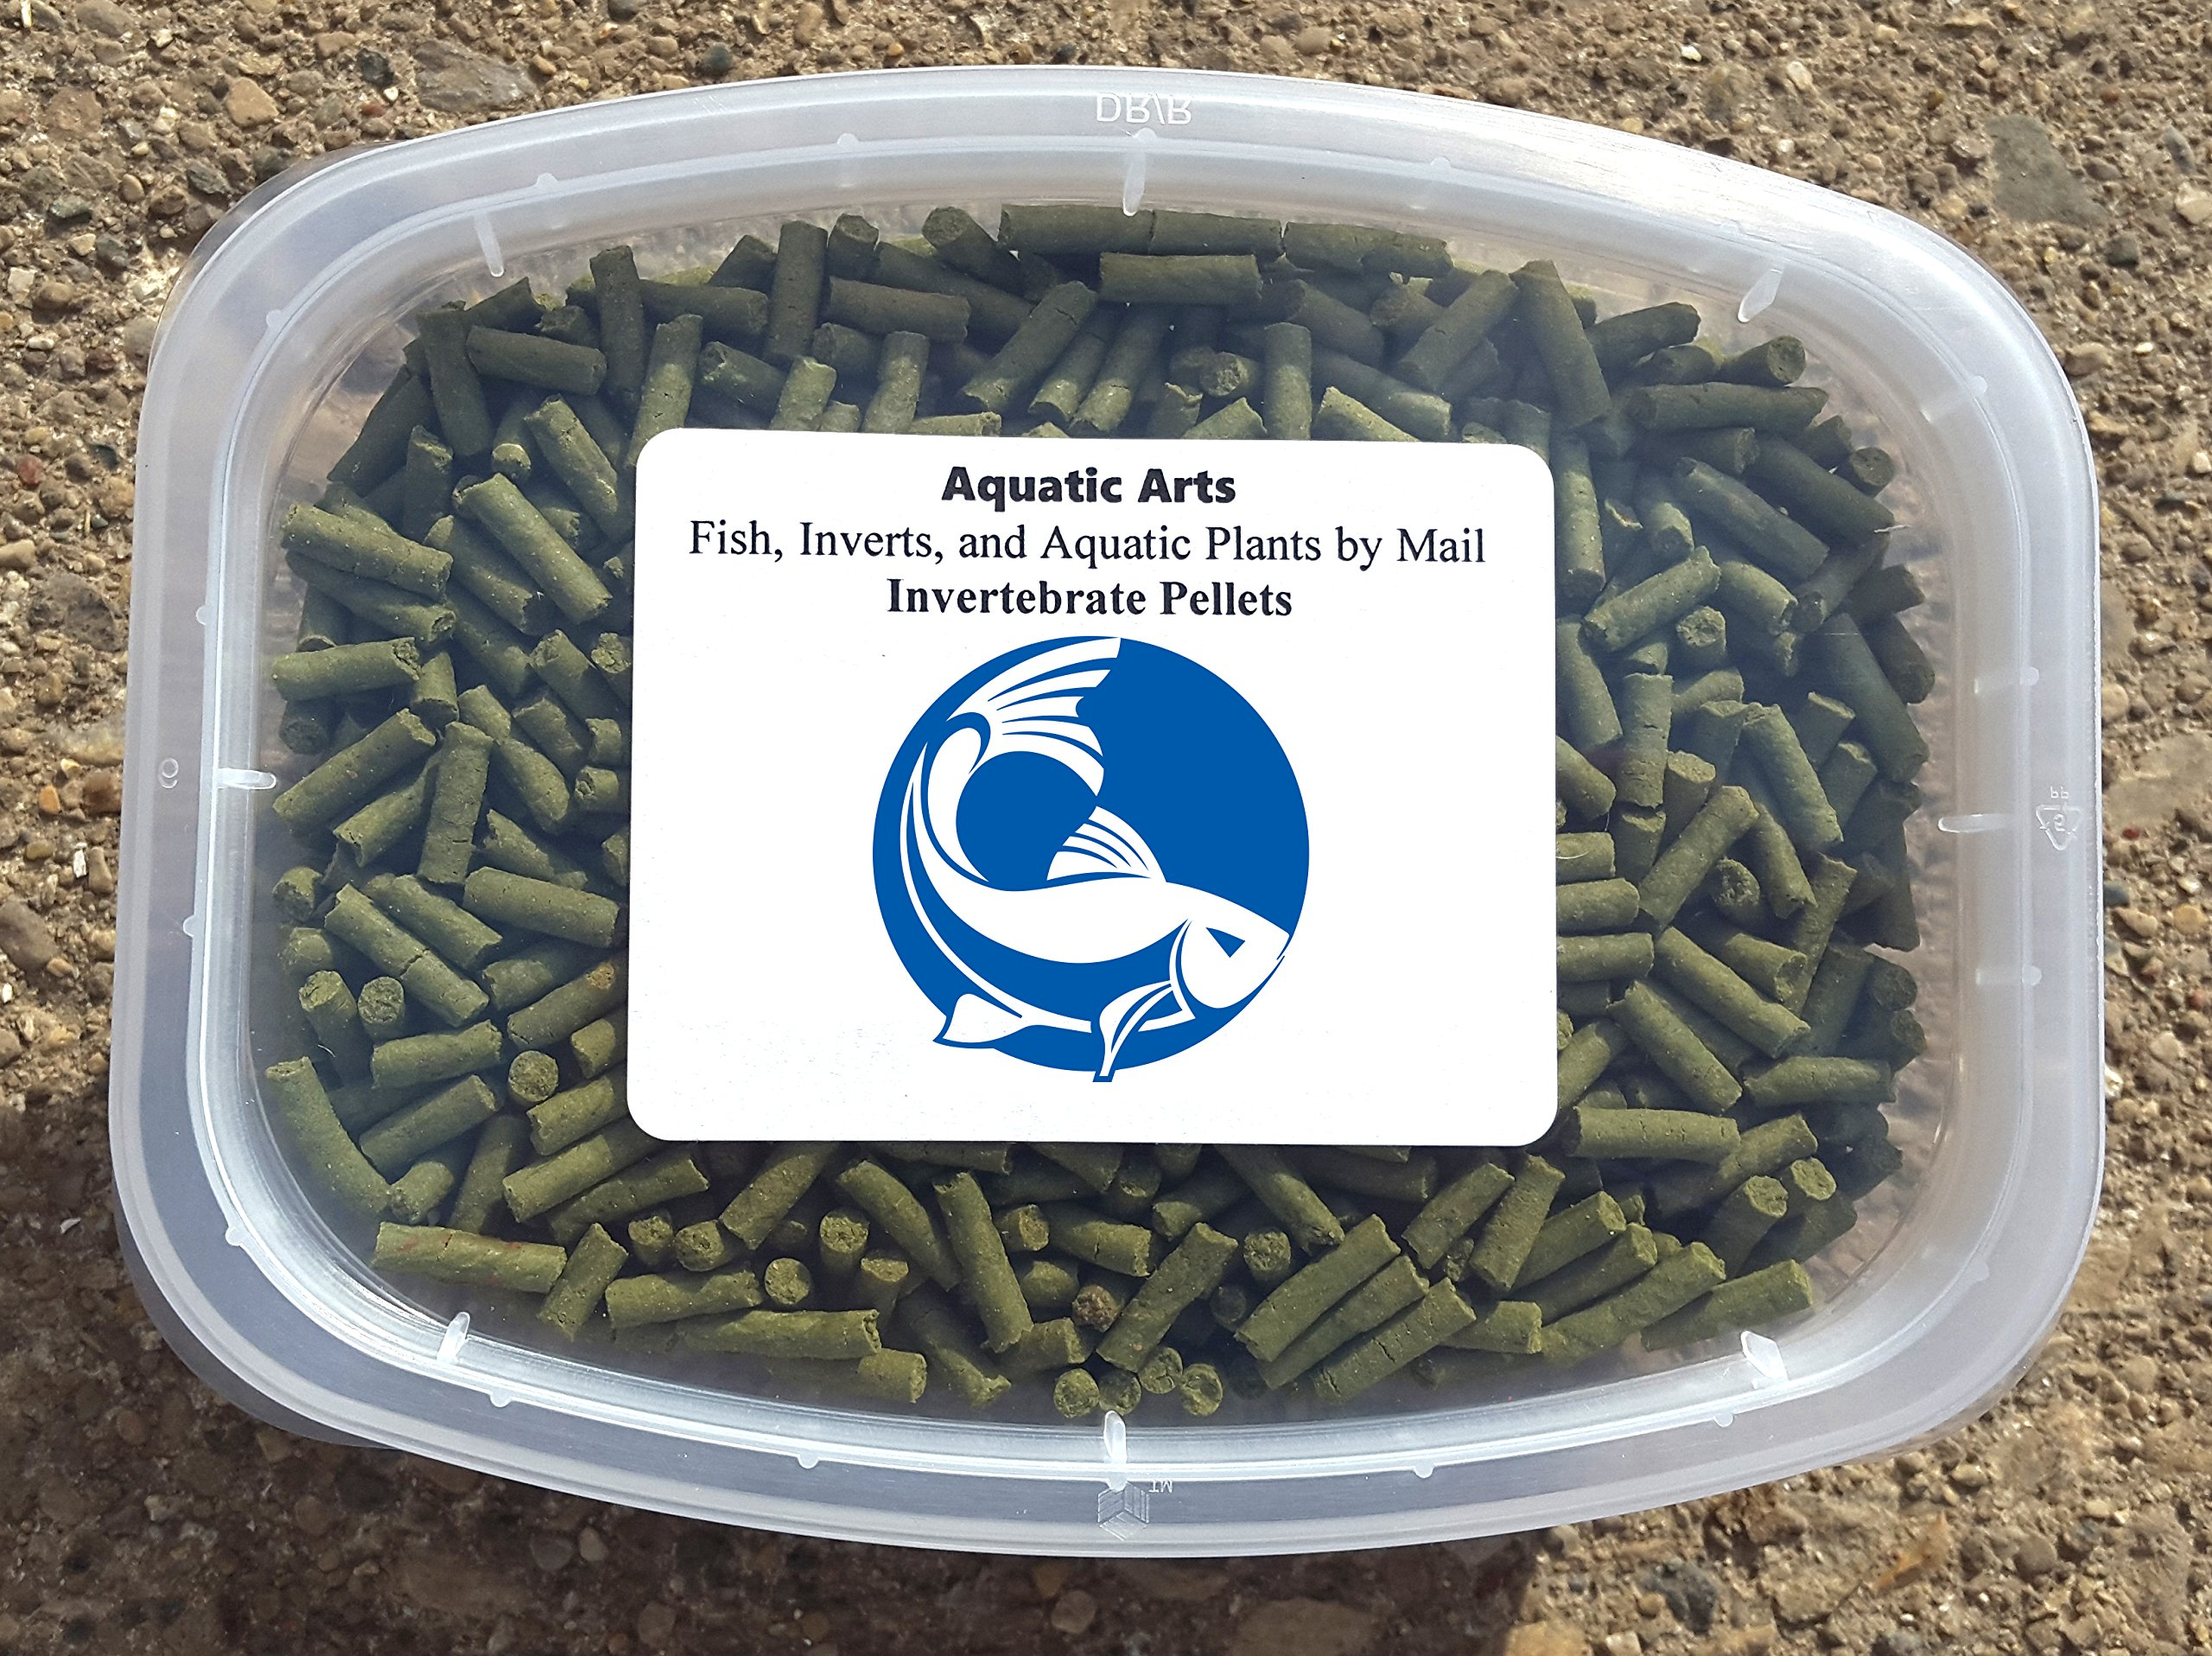 Aquatic Arts Sinking Pellets (.5 lb) Spirulina Food for Freshwater Invertebrates (Crayfish, Crabs, Shrimp, Snails), Fish (Cichlid, Tetra) and more